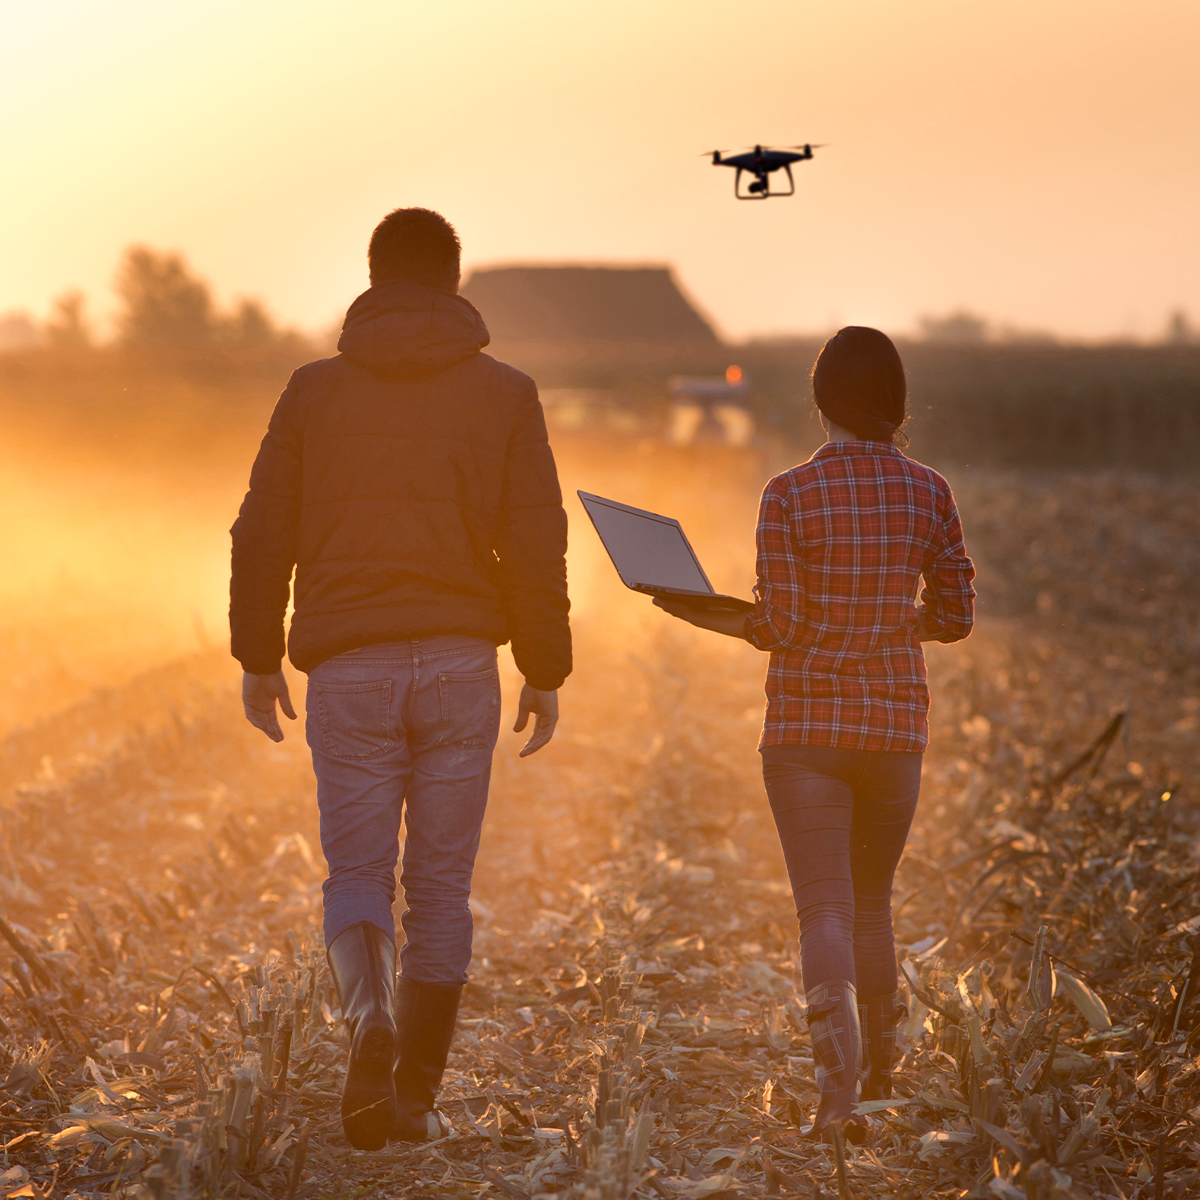 Two people walk through a field at dusk, one person holding a laptop, and a drone is flying overhead.